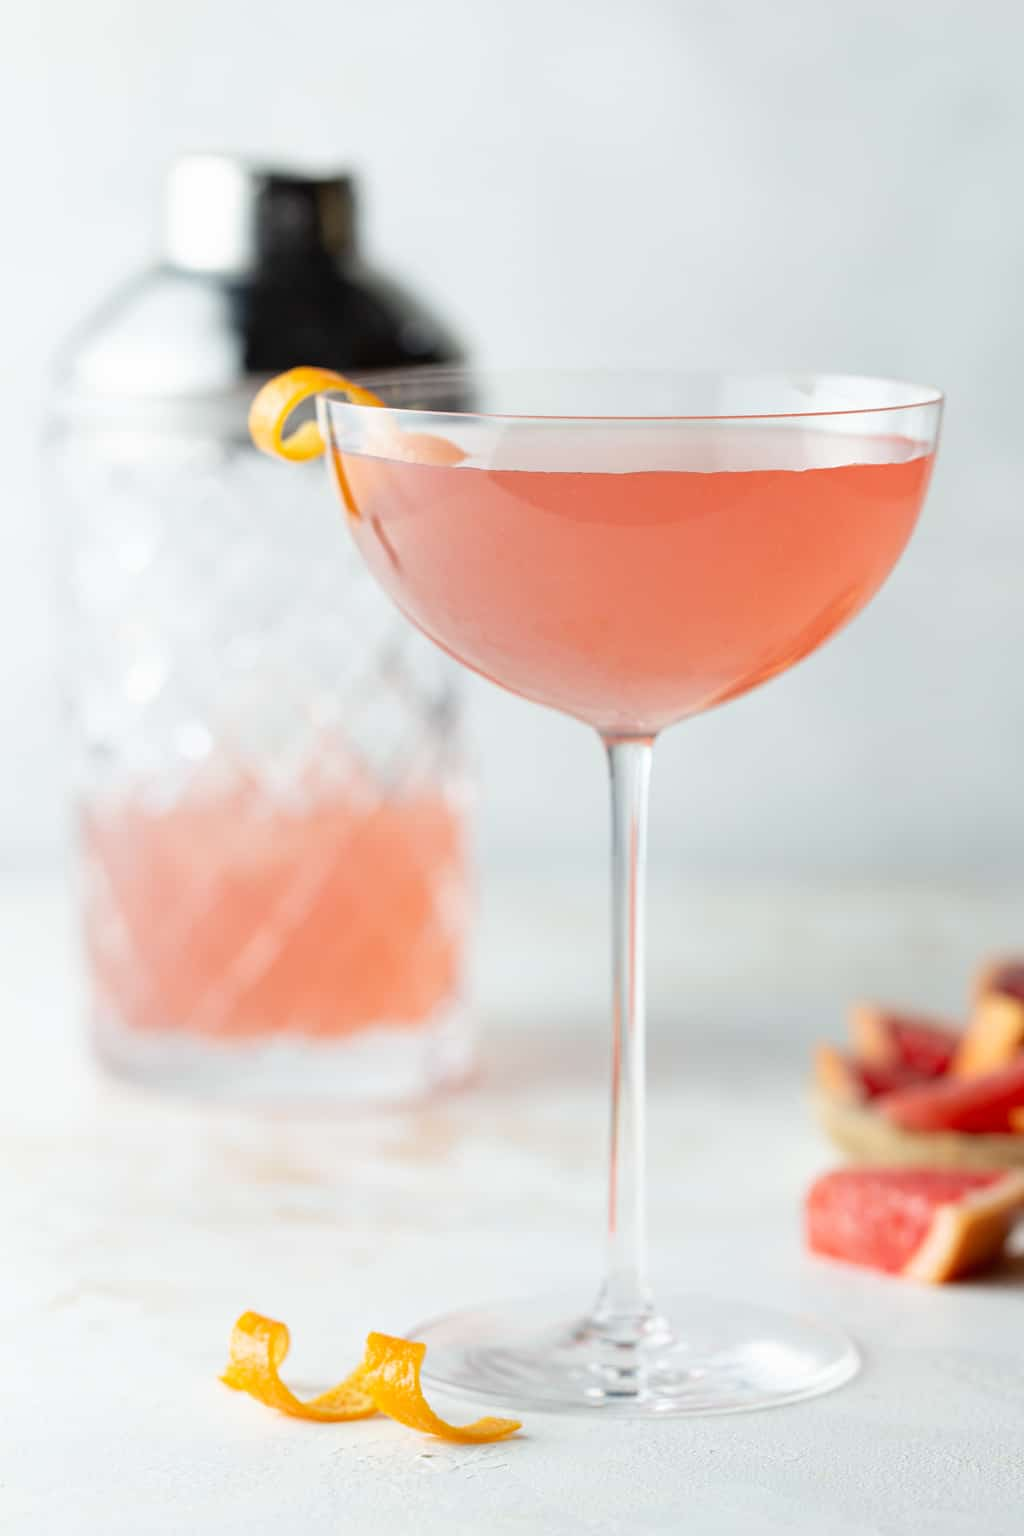 Grapefruit Martini in a tall coupe glass with an empty glass in the background and a pile of grapefruit wedges for garnishes.